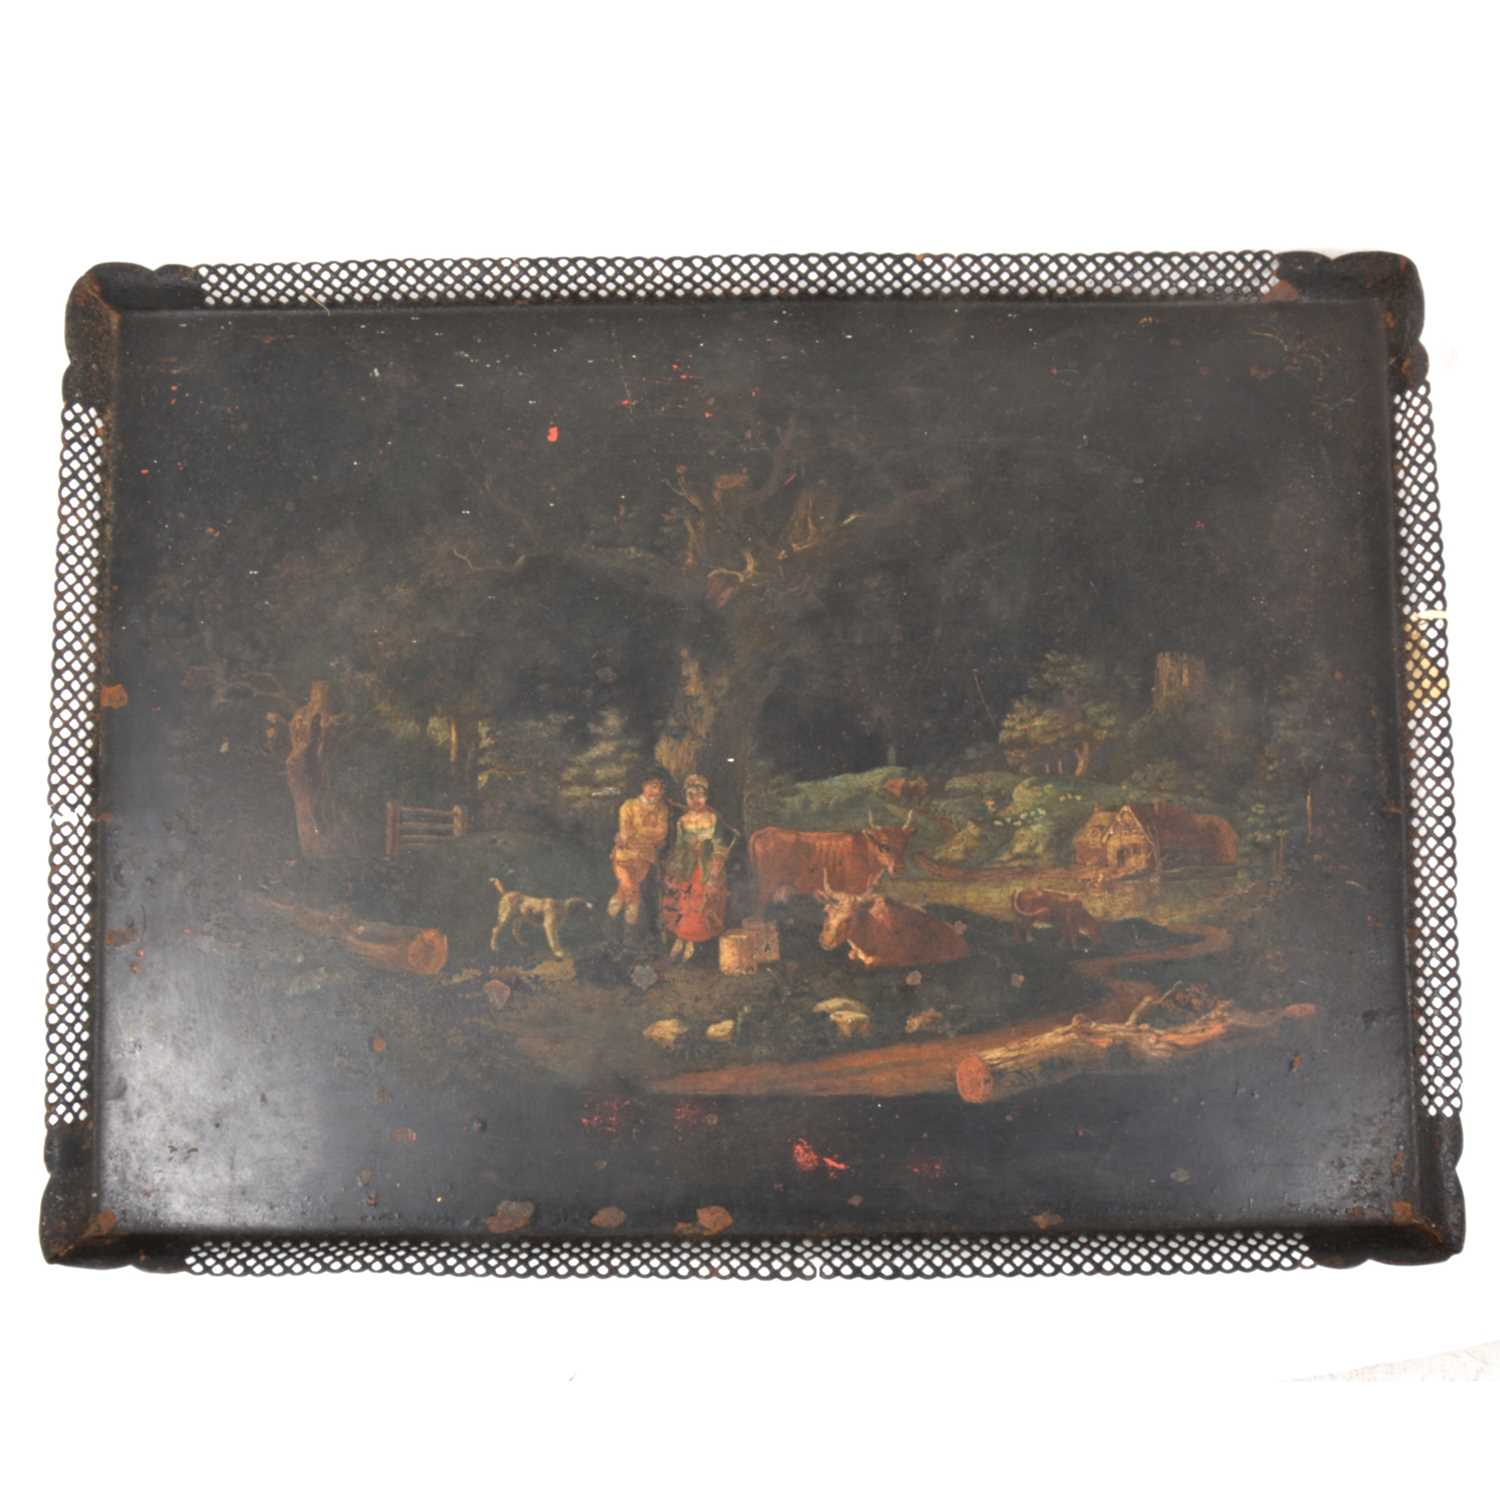 Lot 43-An early 19th Century toleware tray